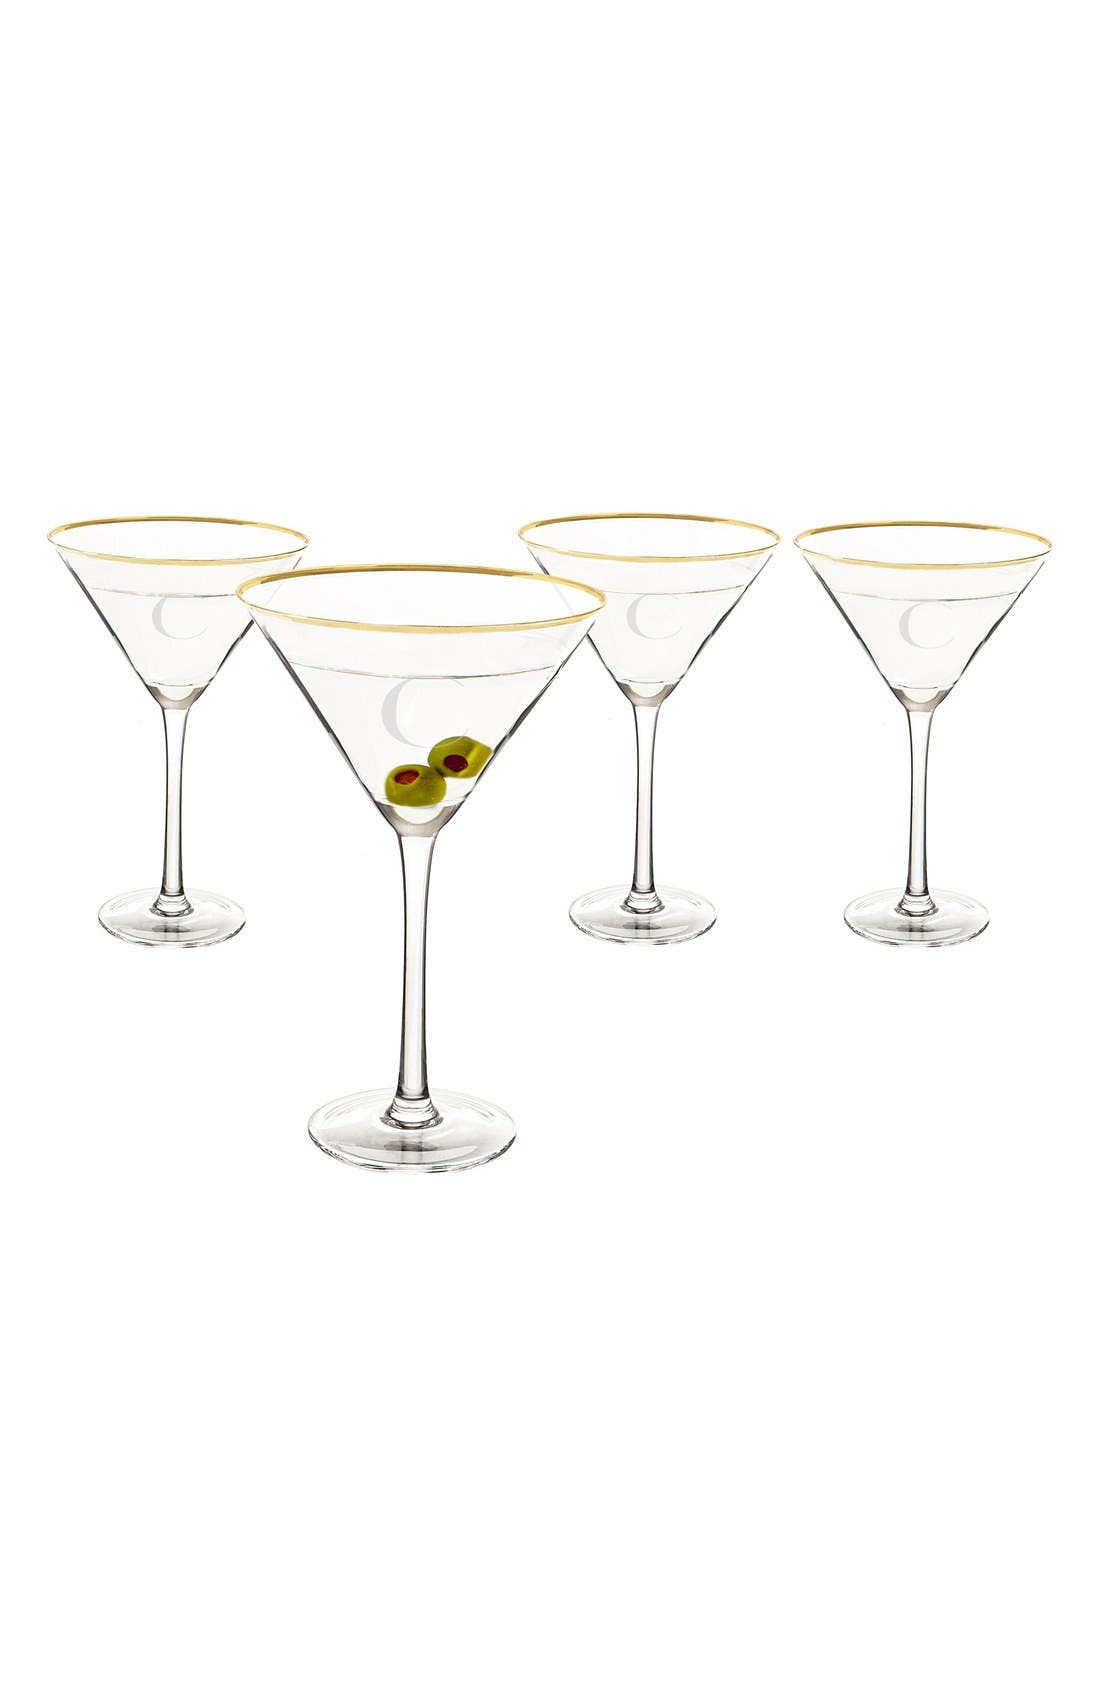 Alternate Image 1 Selected - Cathy's Concepts Set of 4 Gold Rimmed Monogram Martini Glasses